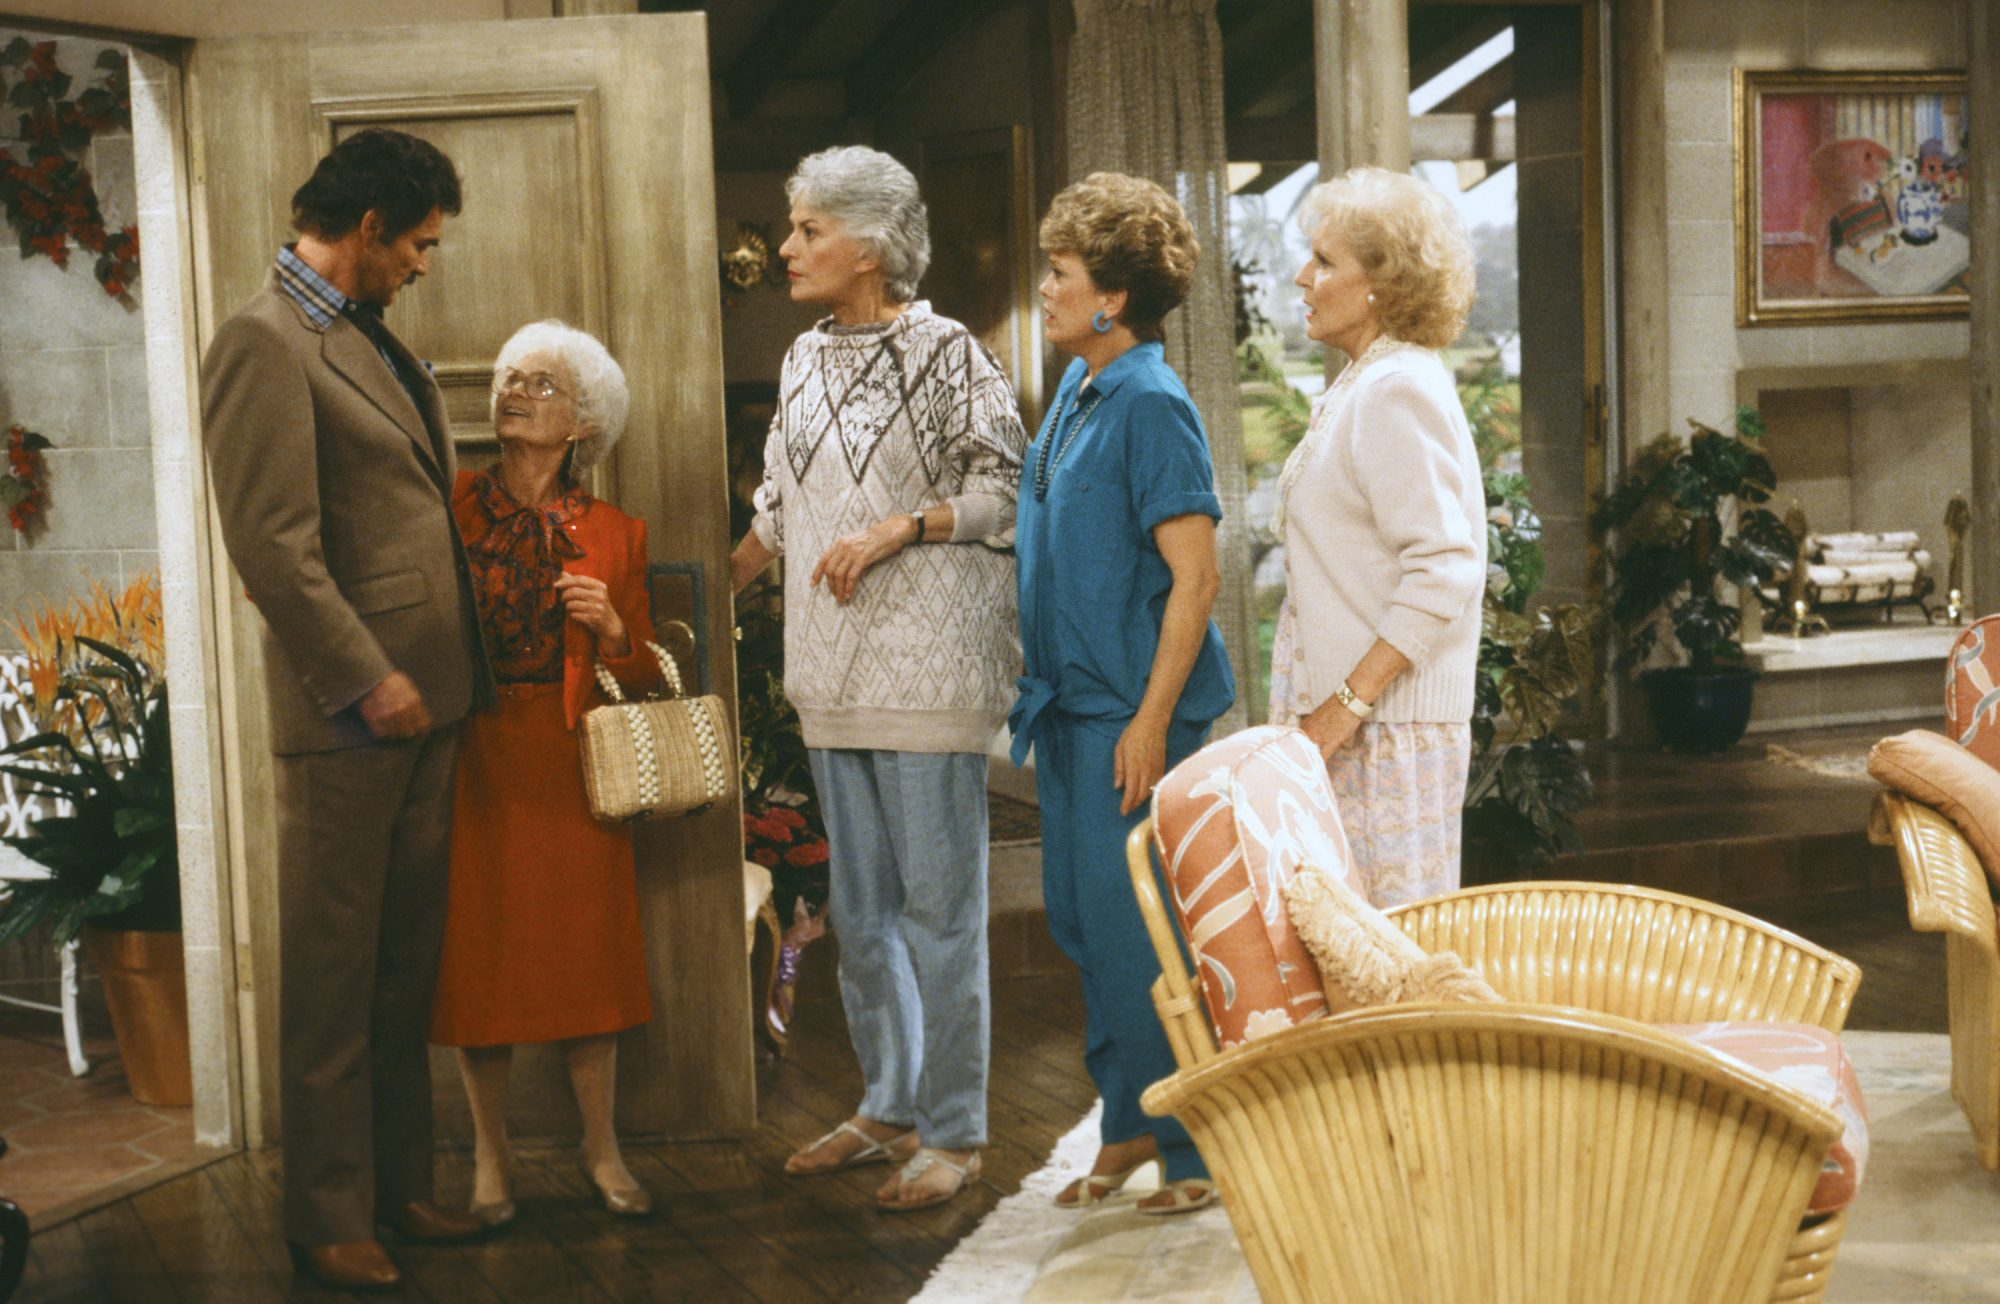 Burt Reynolds on Golden Girls